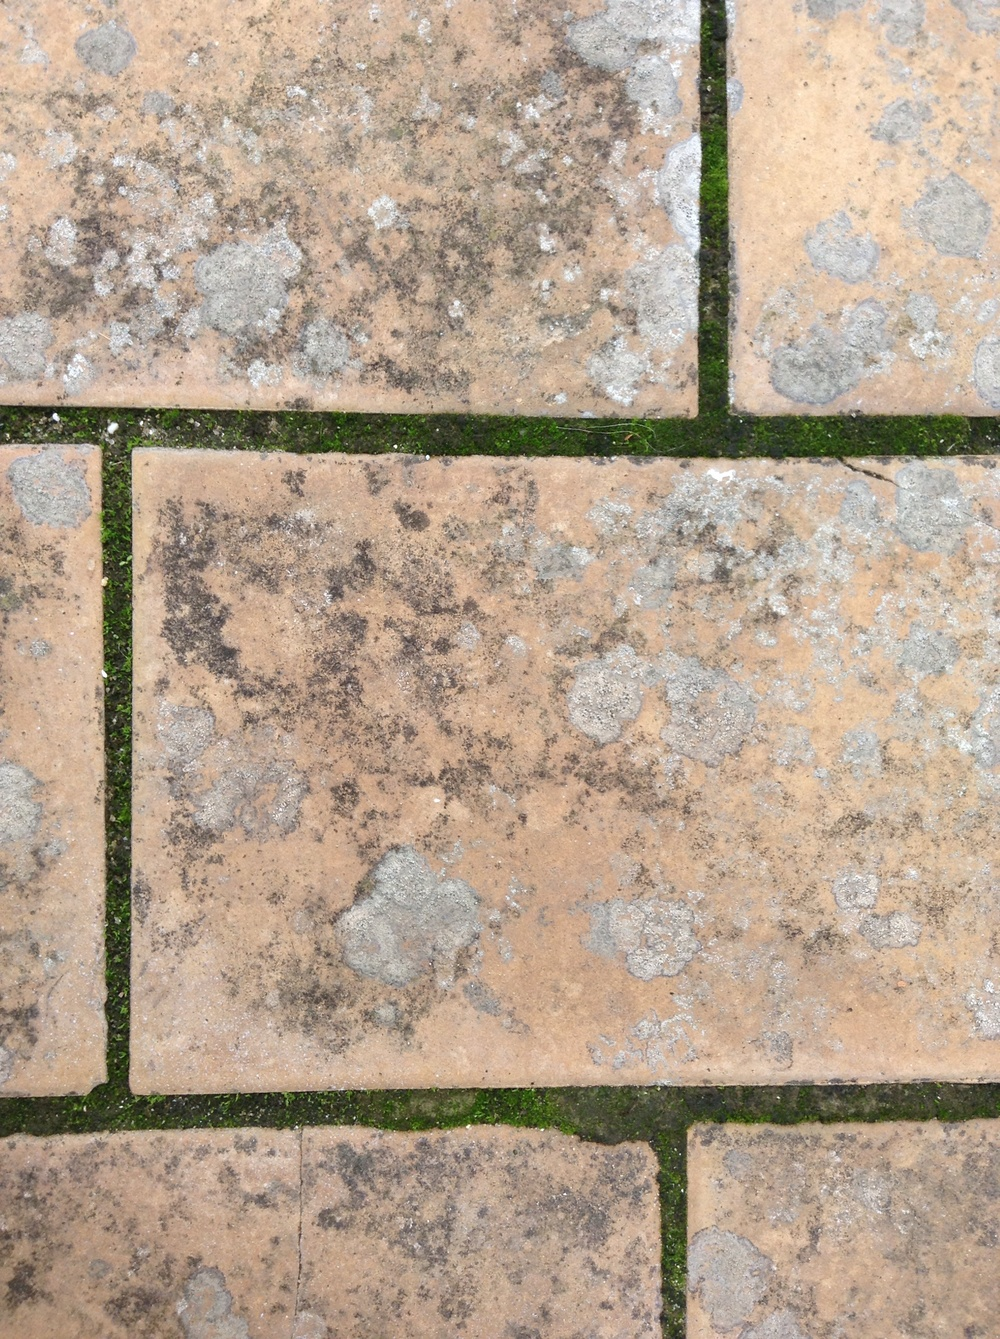 Spotty pink bricks on the studio rooftop with moss growing between.